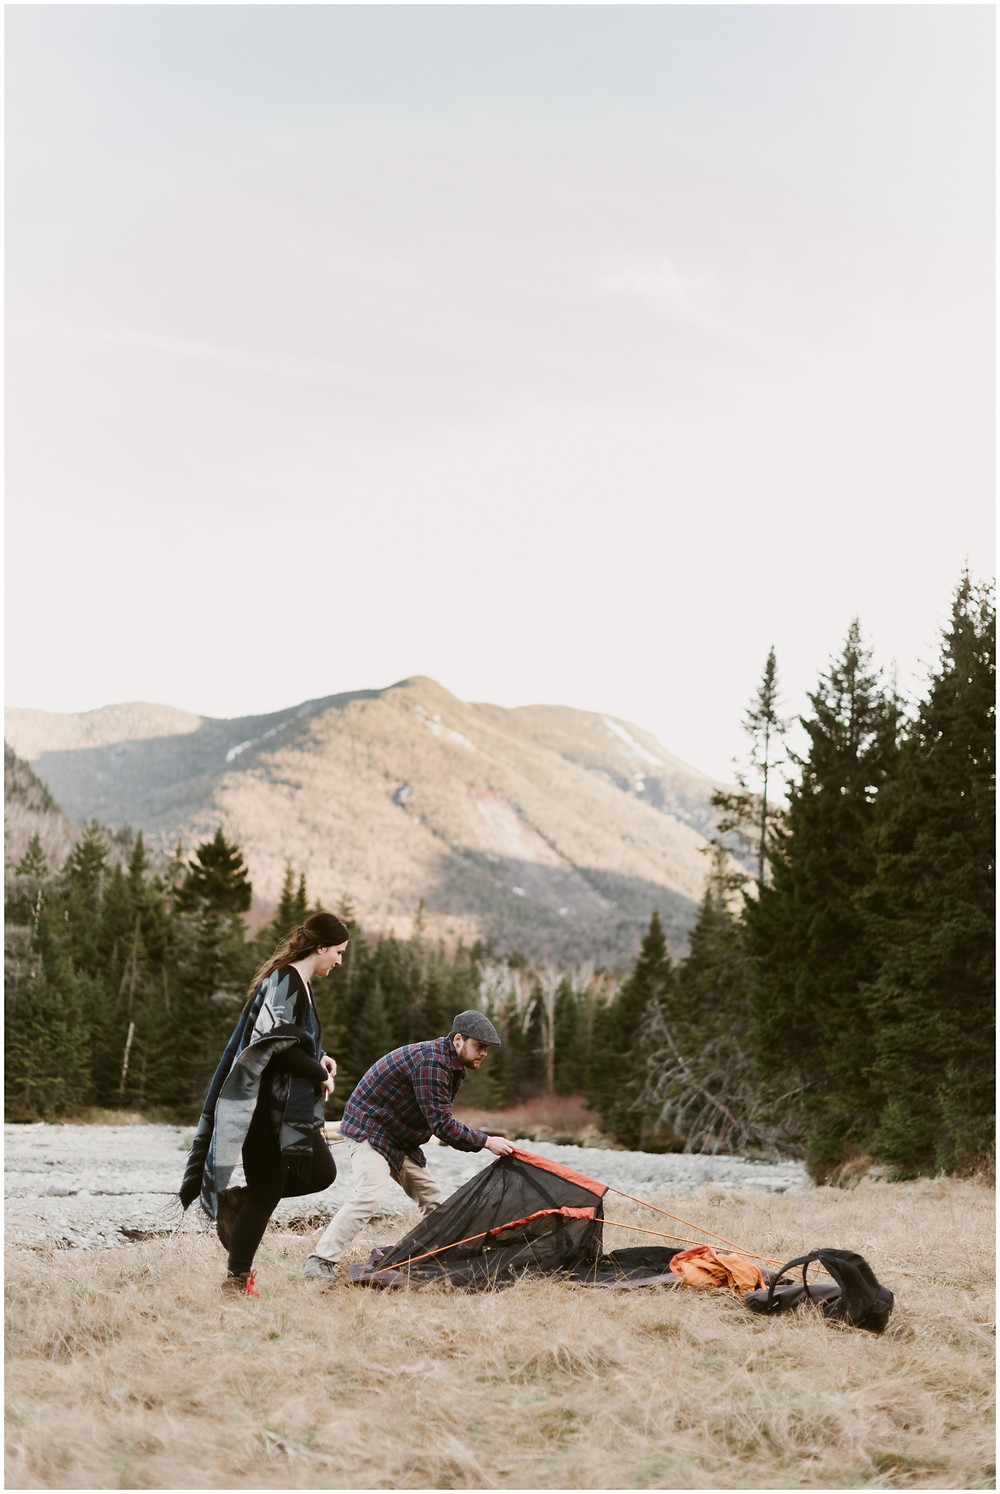 Lifestyle camping photographs in upstate New York by Mountainaire Gatherings